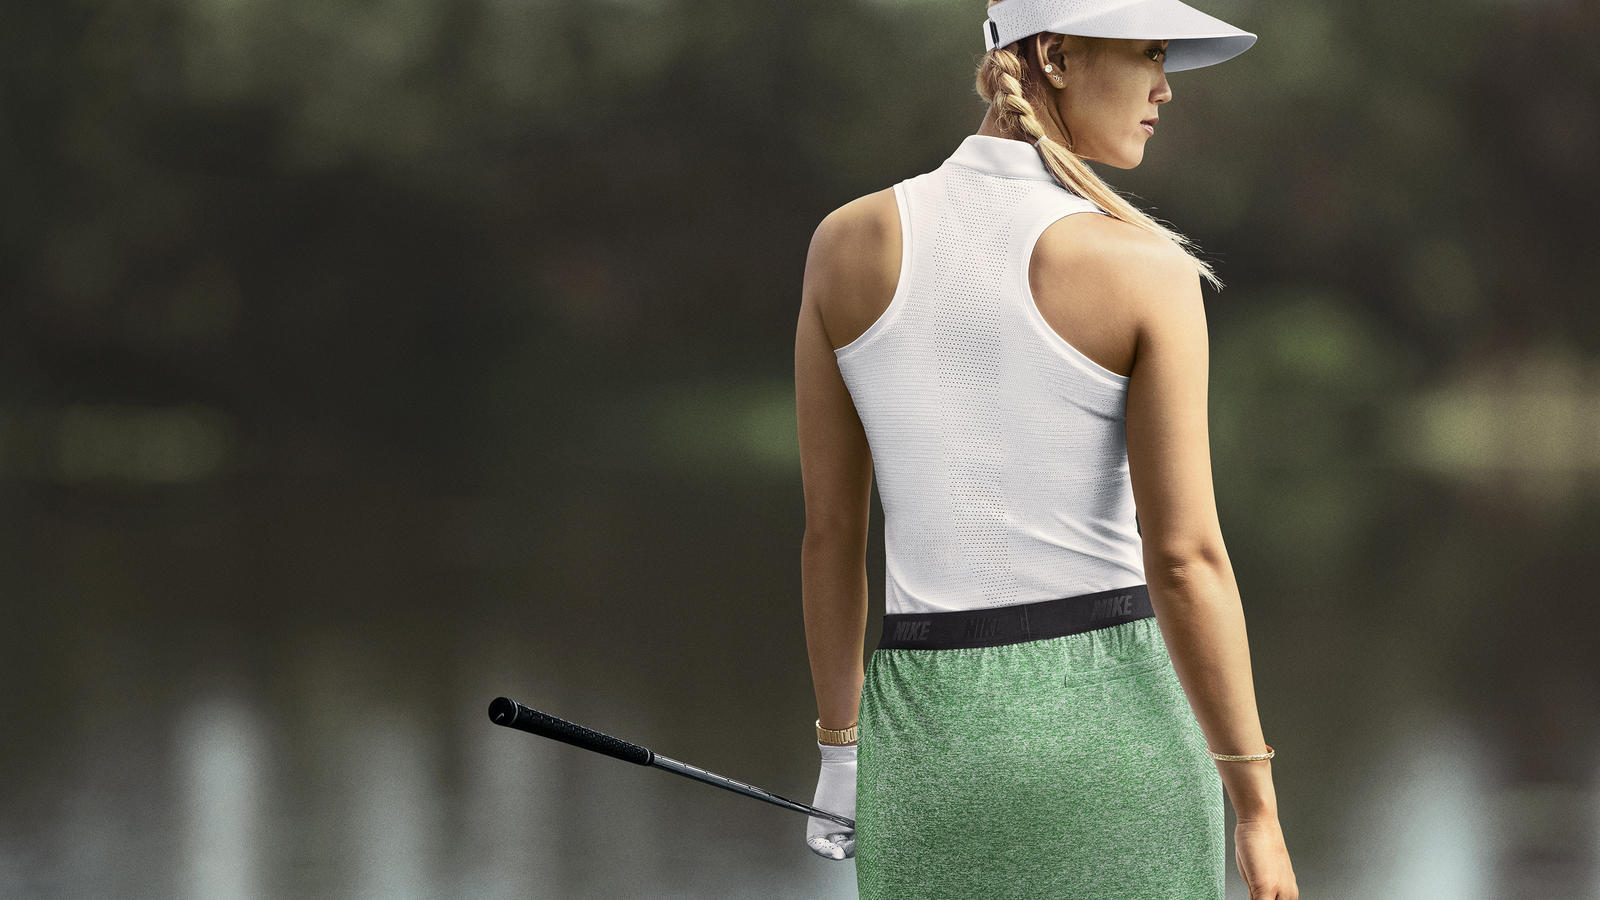 4020c48fa75e06 Distinctive Style on Display at First Women's Major - Nike News